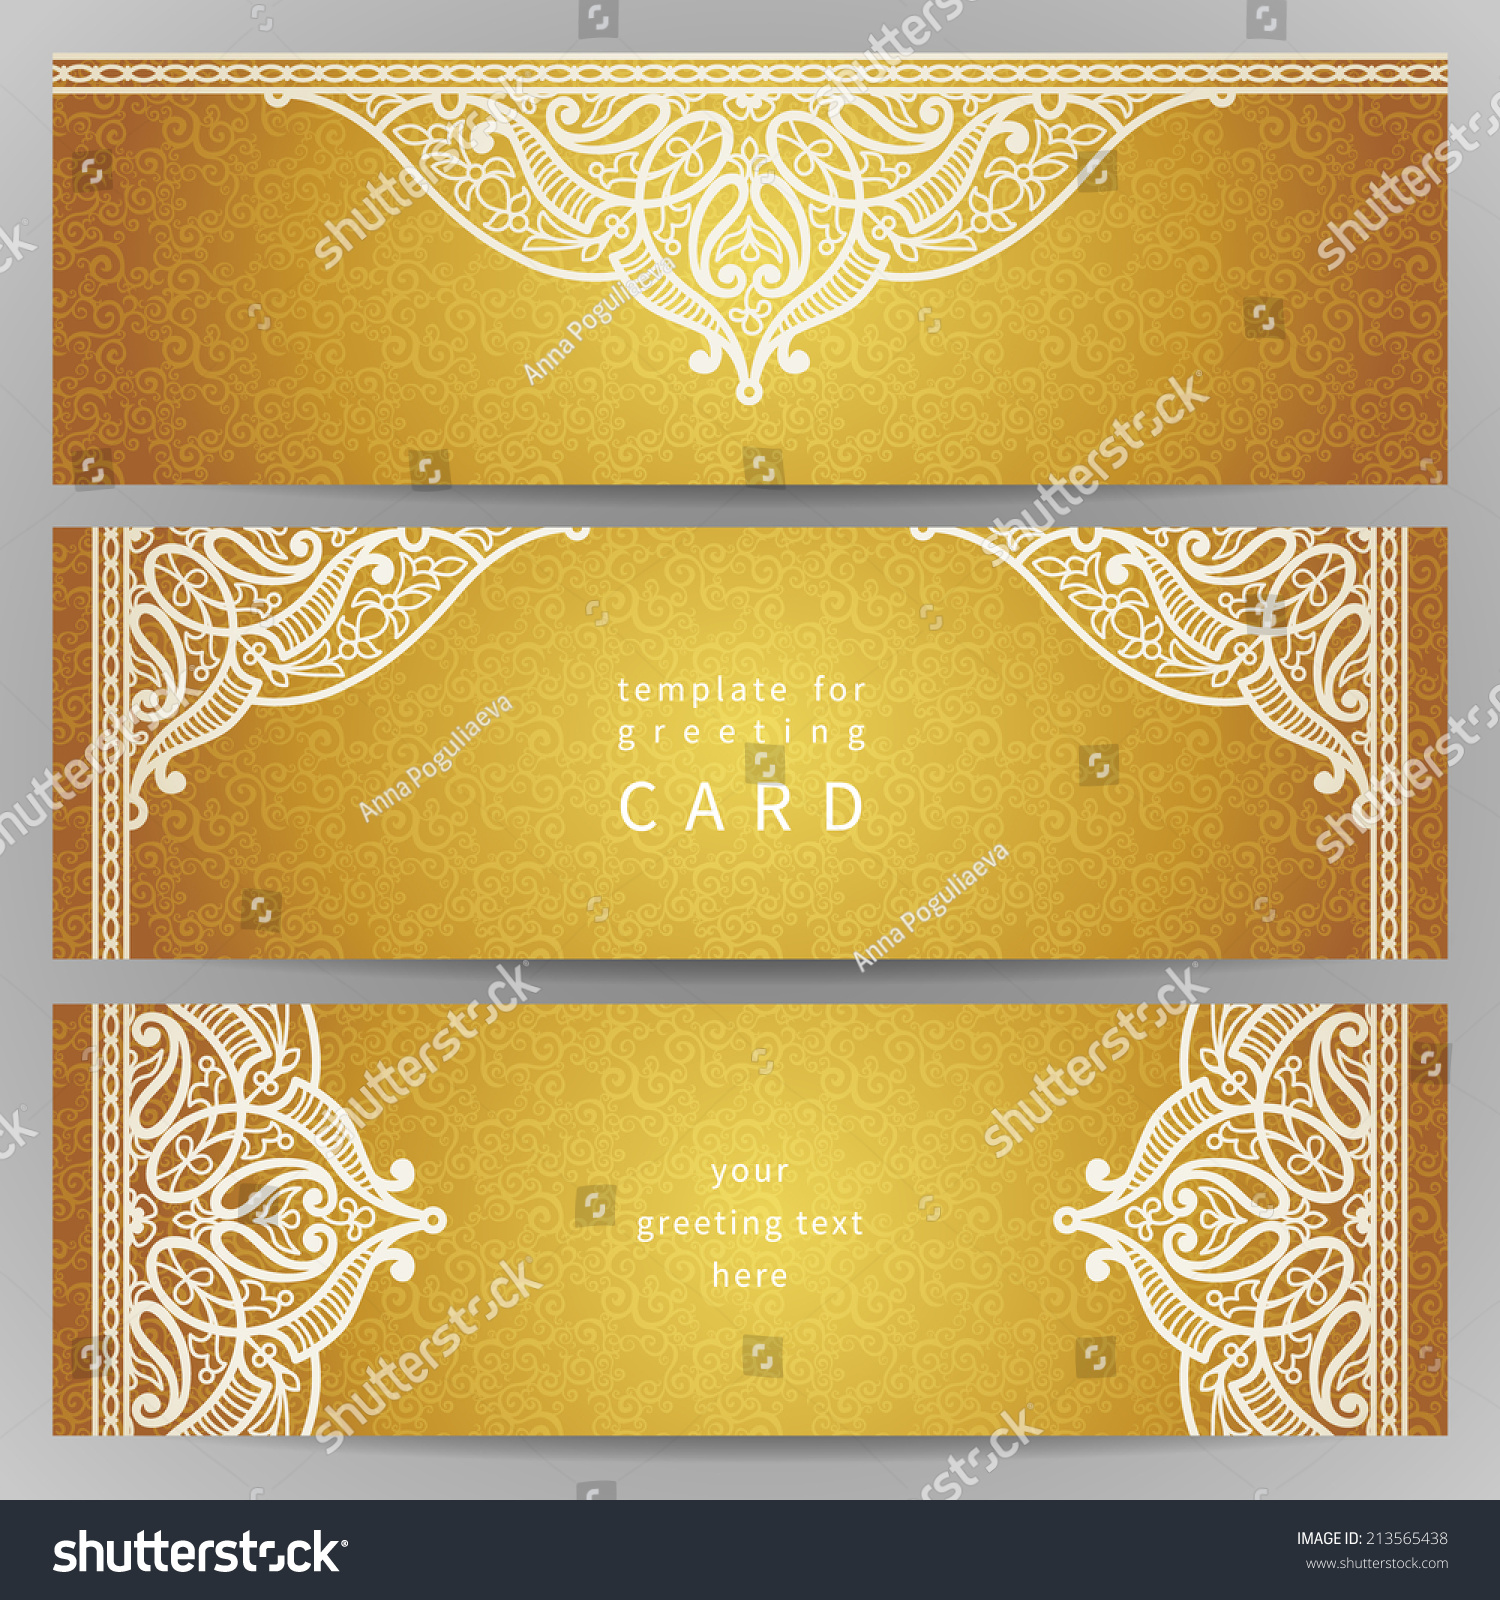 Vintage Ornate Cards Oriental Style Golden Stock Photo Photo